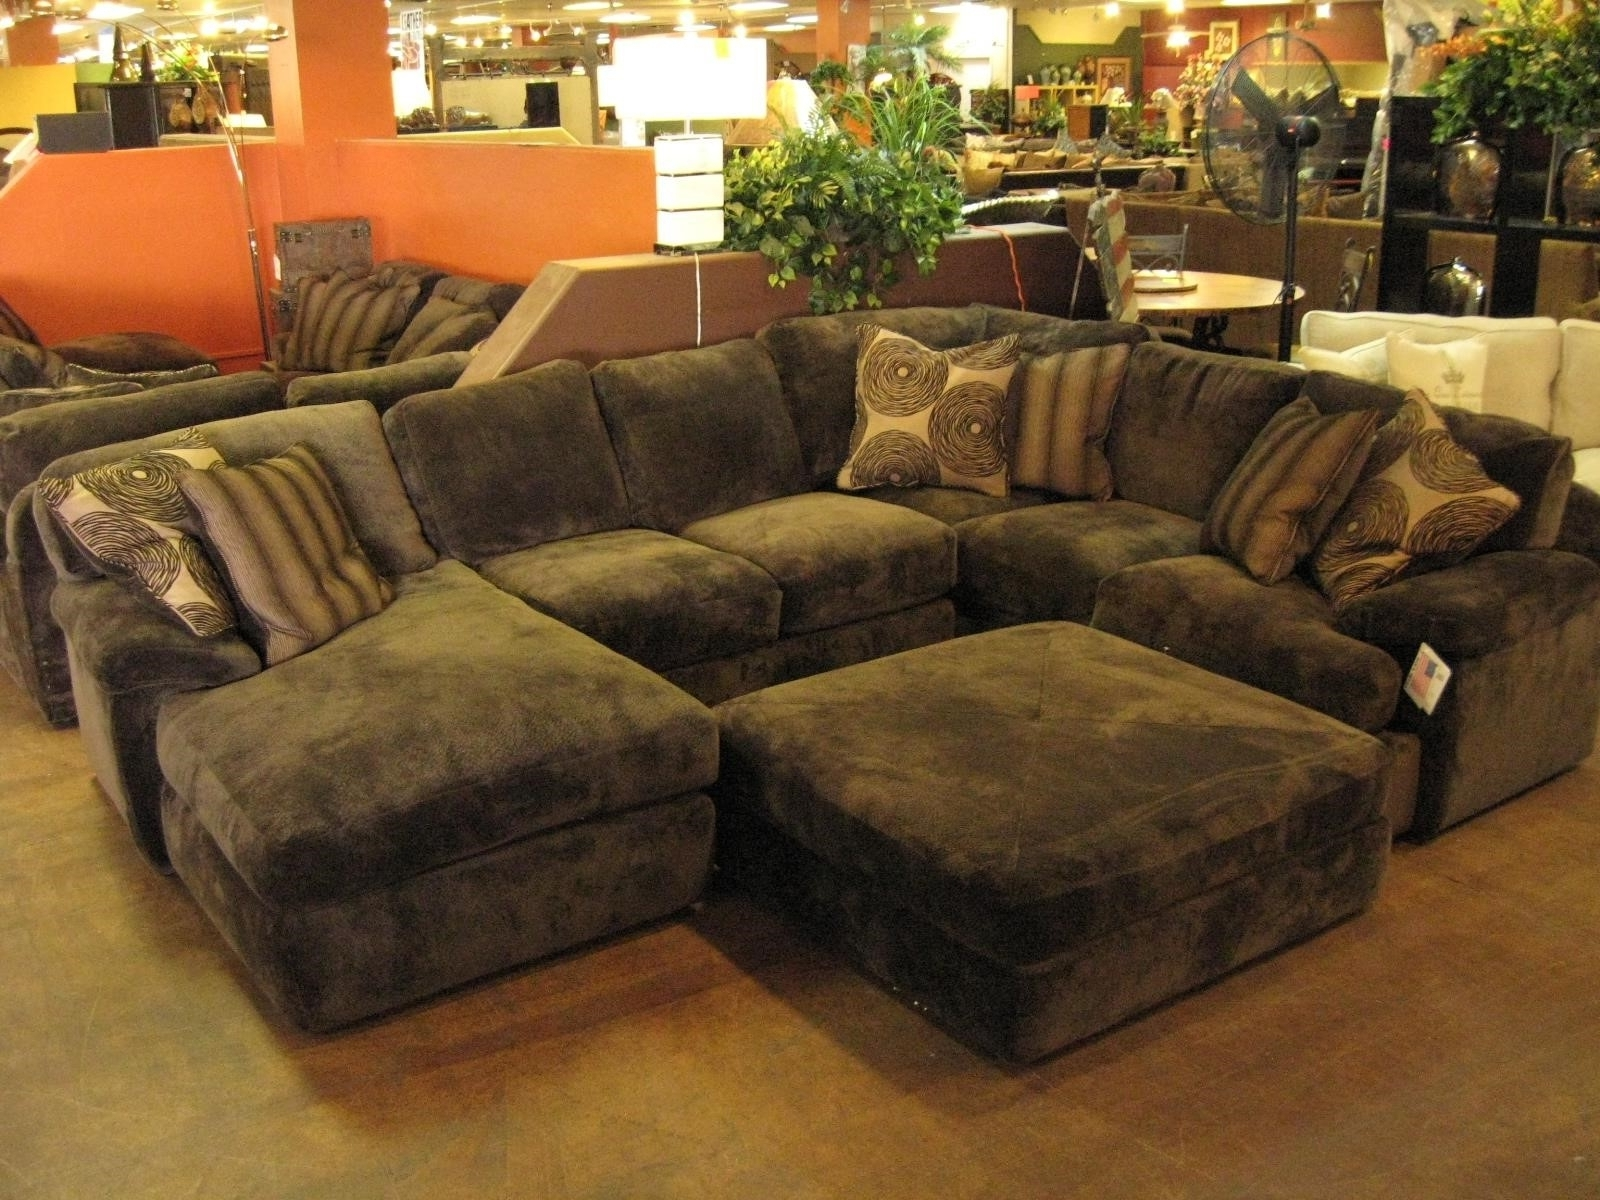 Famous Sectional Sofas With Oversized Ottoman Intended For Sofa Extra Large Sectional With Chaise And Ottoman U Shaped (View 3 of 20)